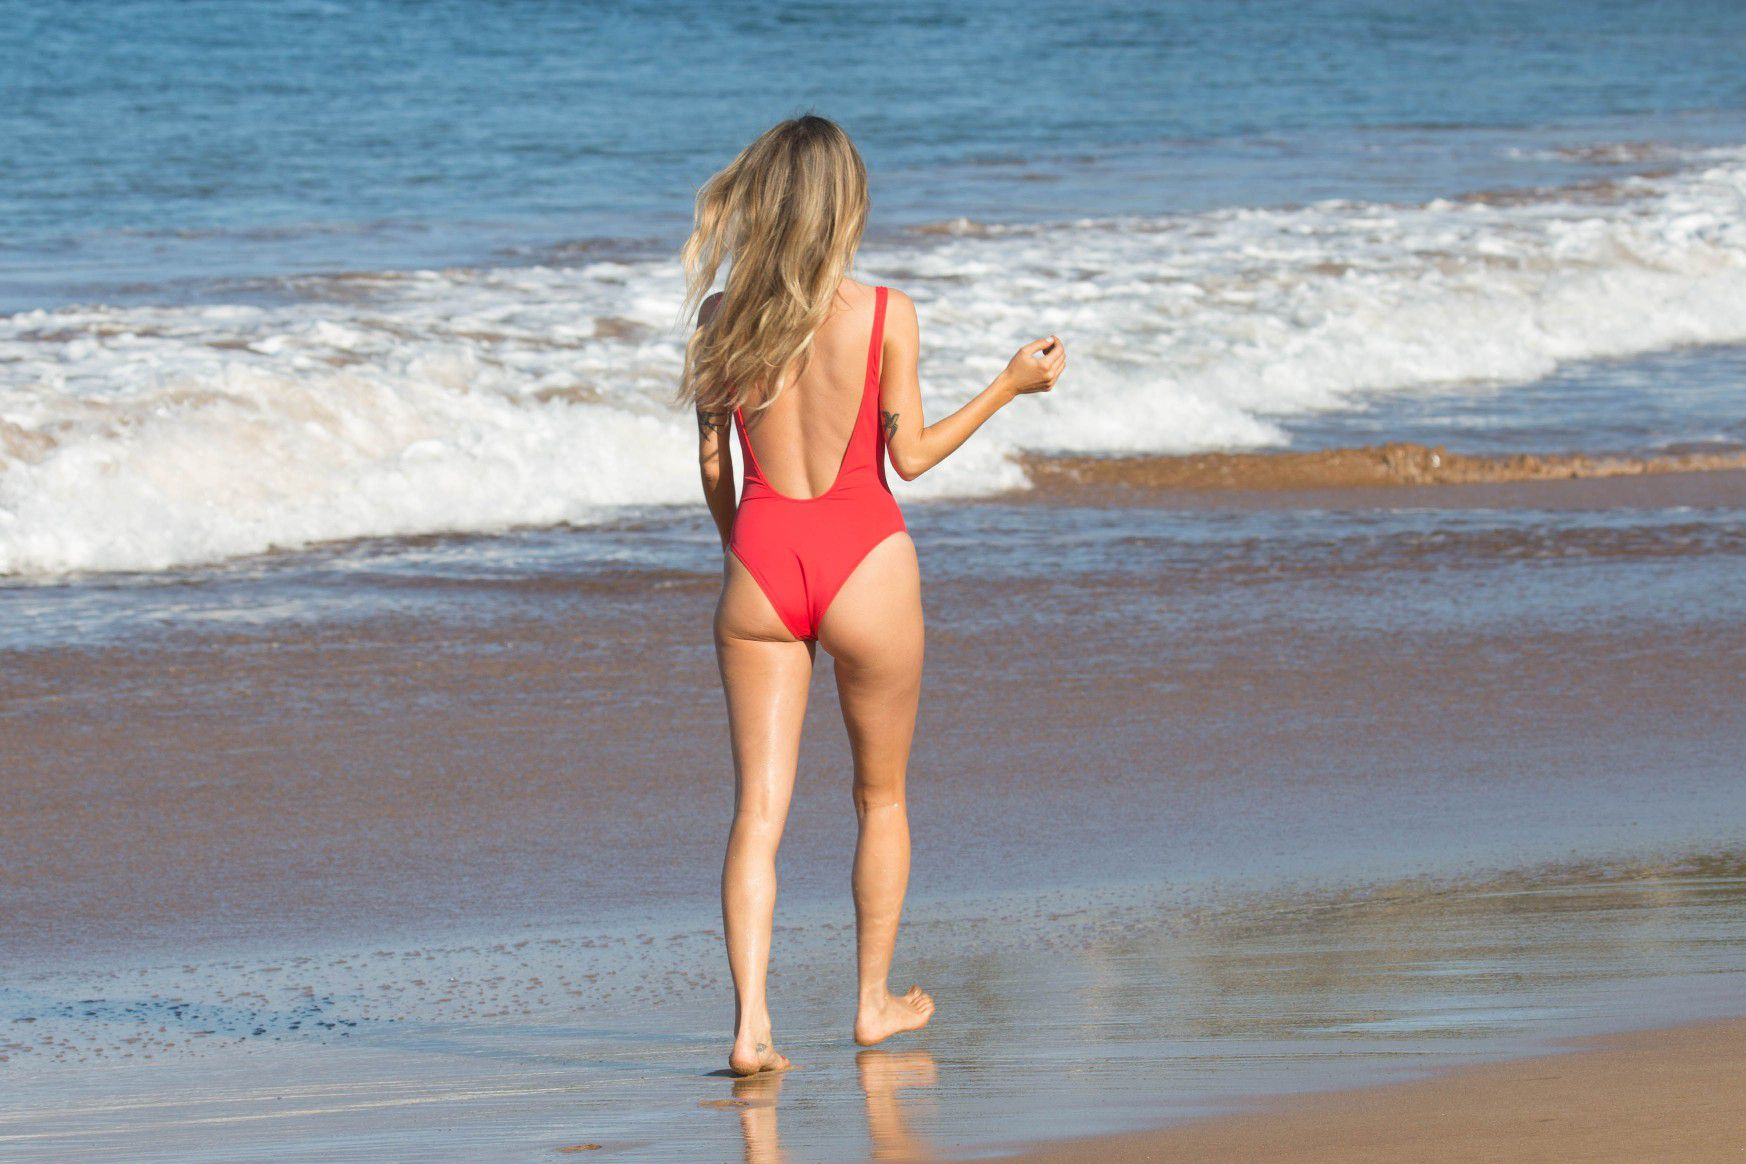 kaitlyn-bristowe-cameltoe-in-red-swimsuit-on-the-beach-in-hawaii-7412